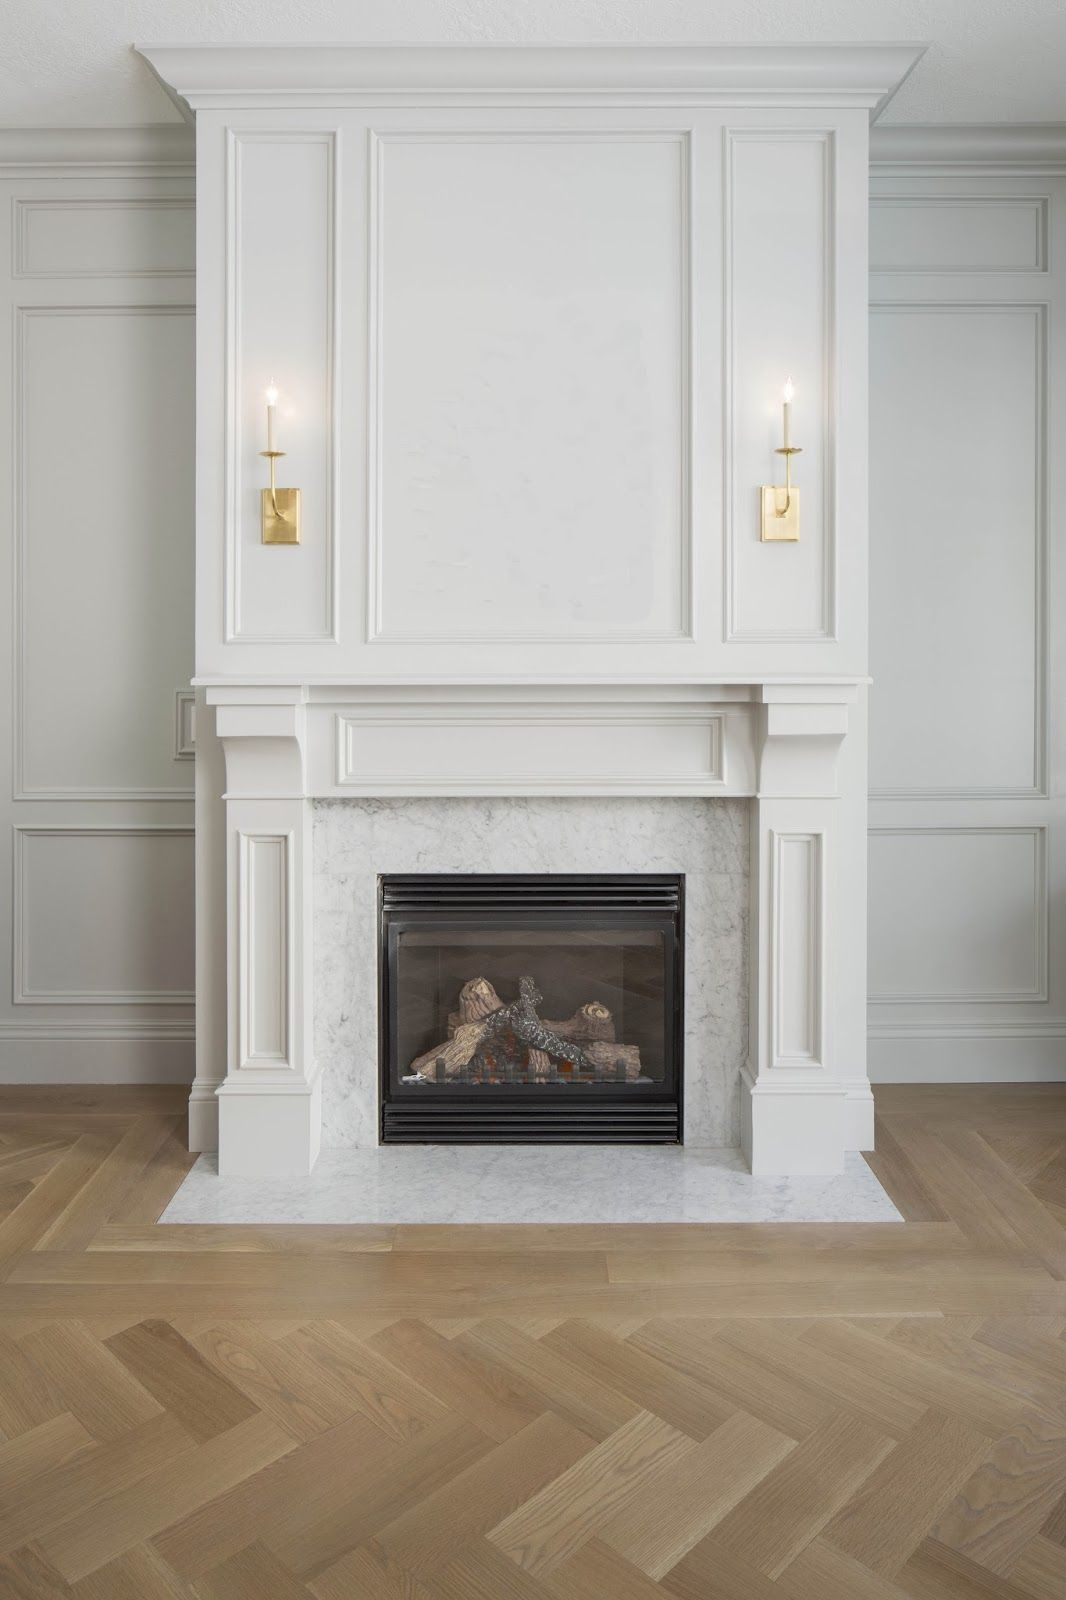 Interesting Combination Of Multi Directional And Herringbone Wood Floor Patterns Home Fireplace Fireplace Mantel Designs Marble Fireplace Surround